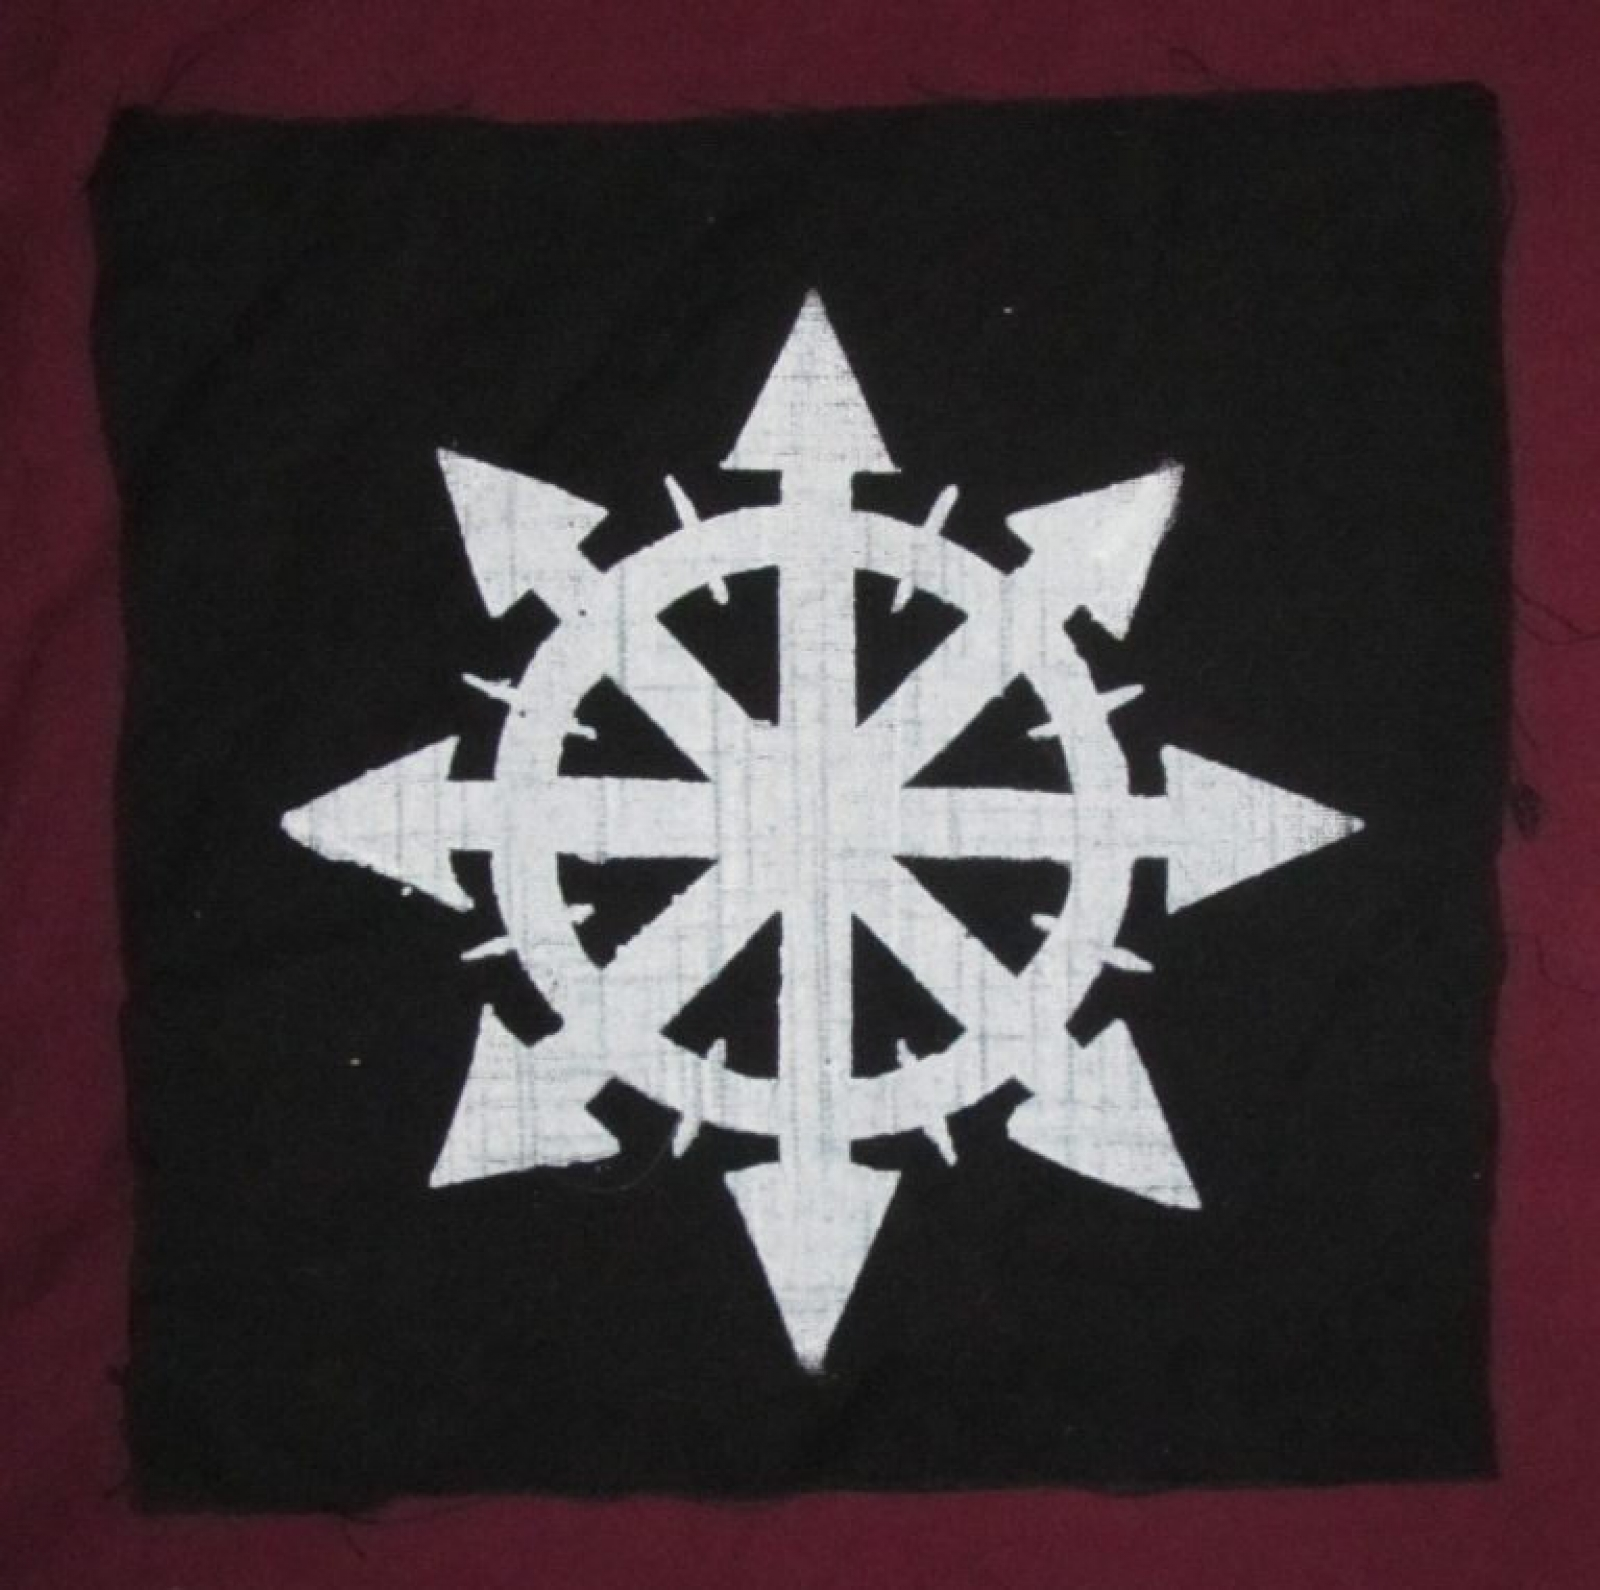 Chaos Back Patch White Ink On Black Large For Back Or Bag